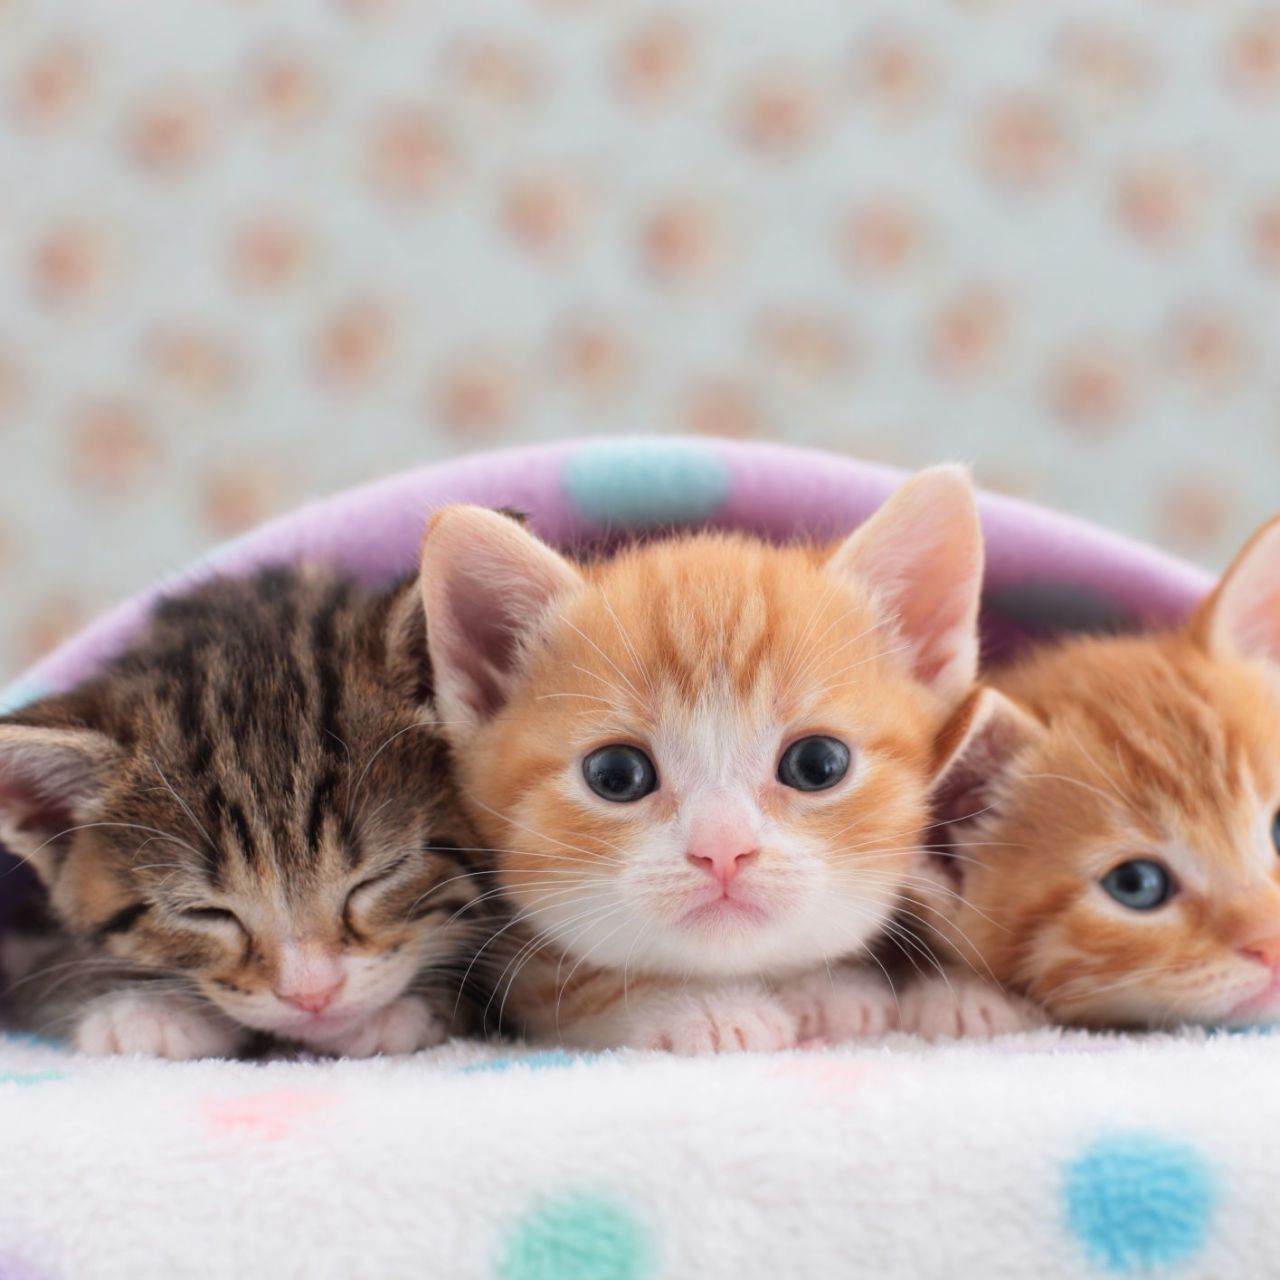 27 Tiny Cats That Will Fit Perfectly In Your Tiny House Kittens Cutest Tiny Cats Cute Kitten Gif